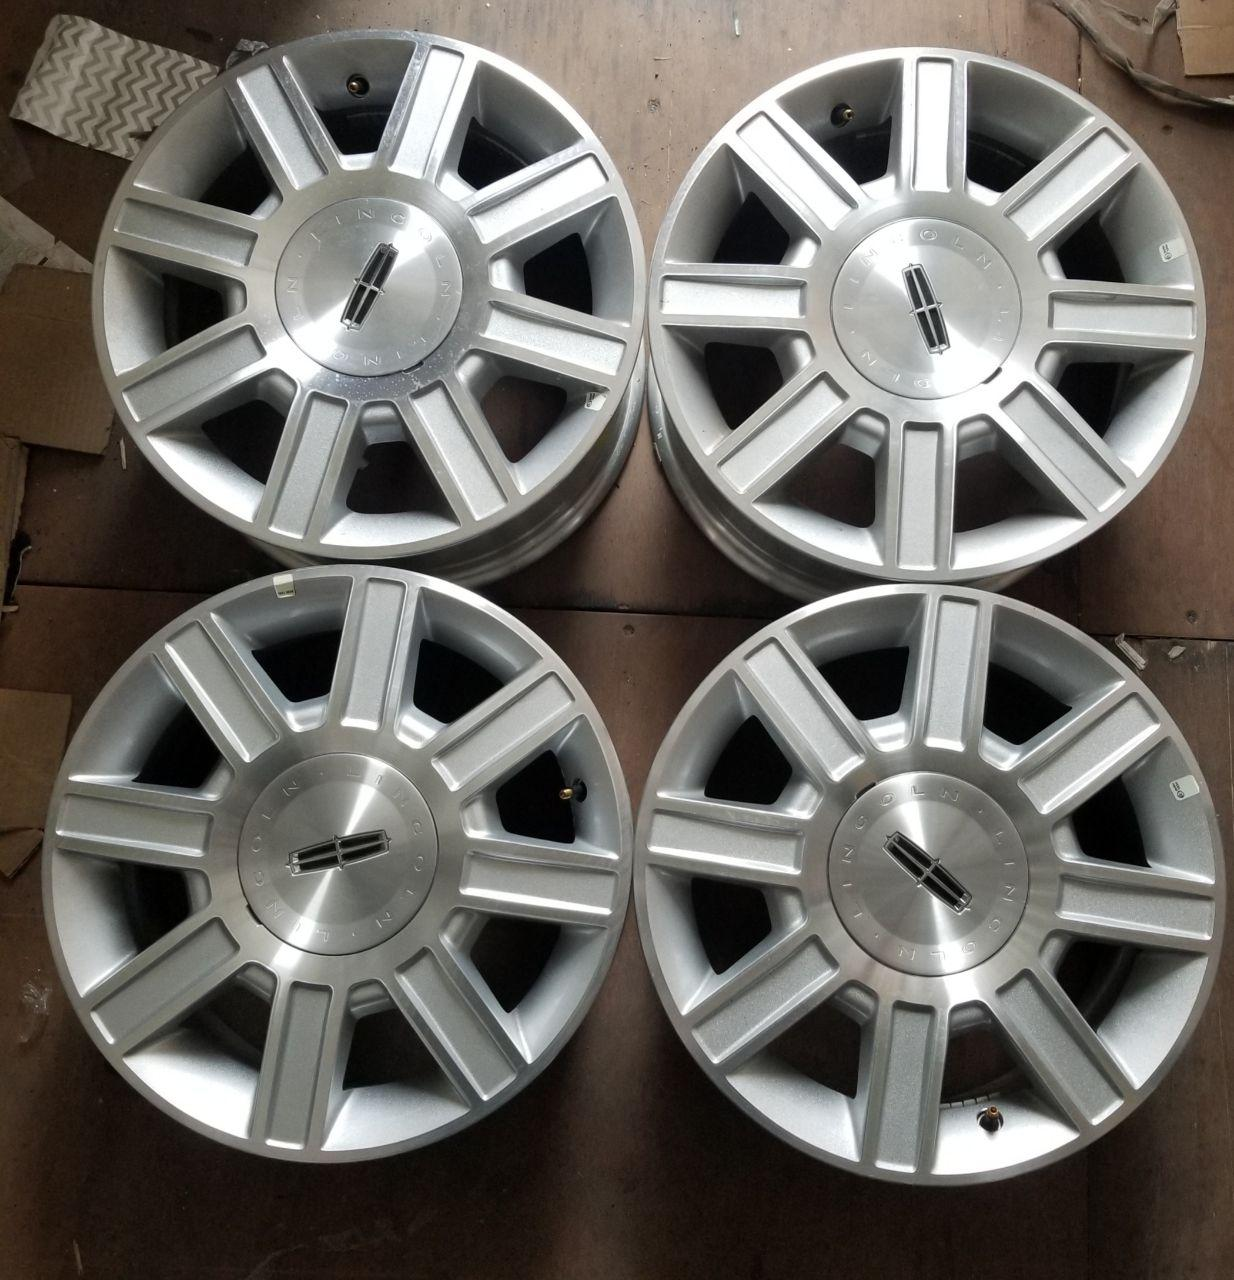 - OEM WHEELS - 2006-2011 LINCOLN TOWNCAR 17x7 8 SPOKE Hollander #3754 /  USED